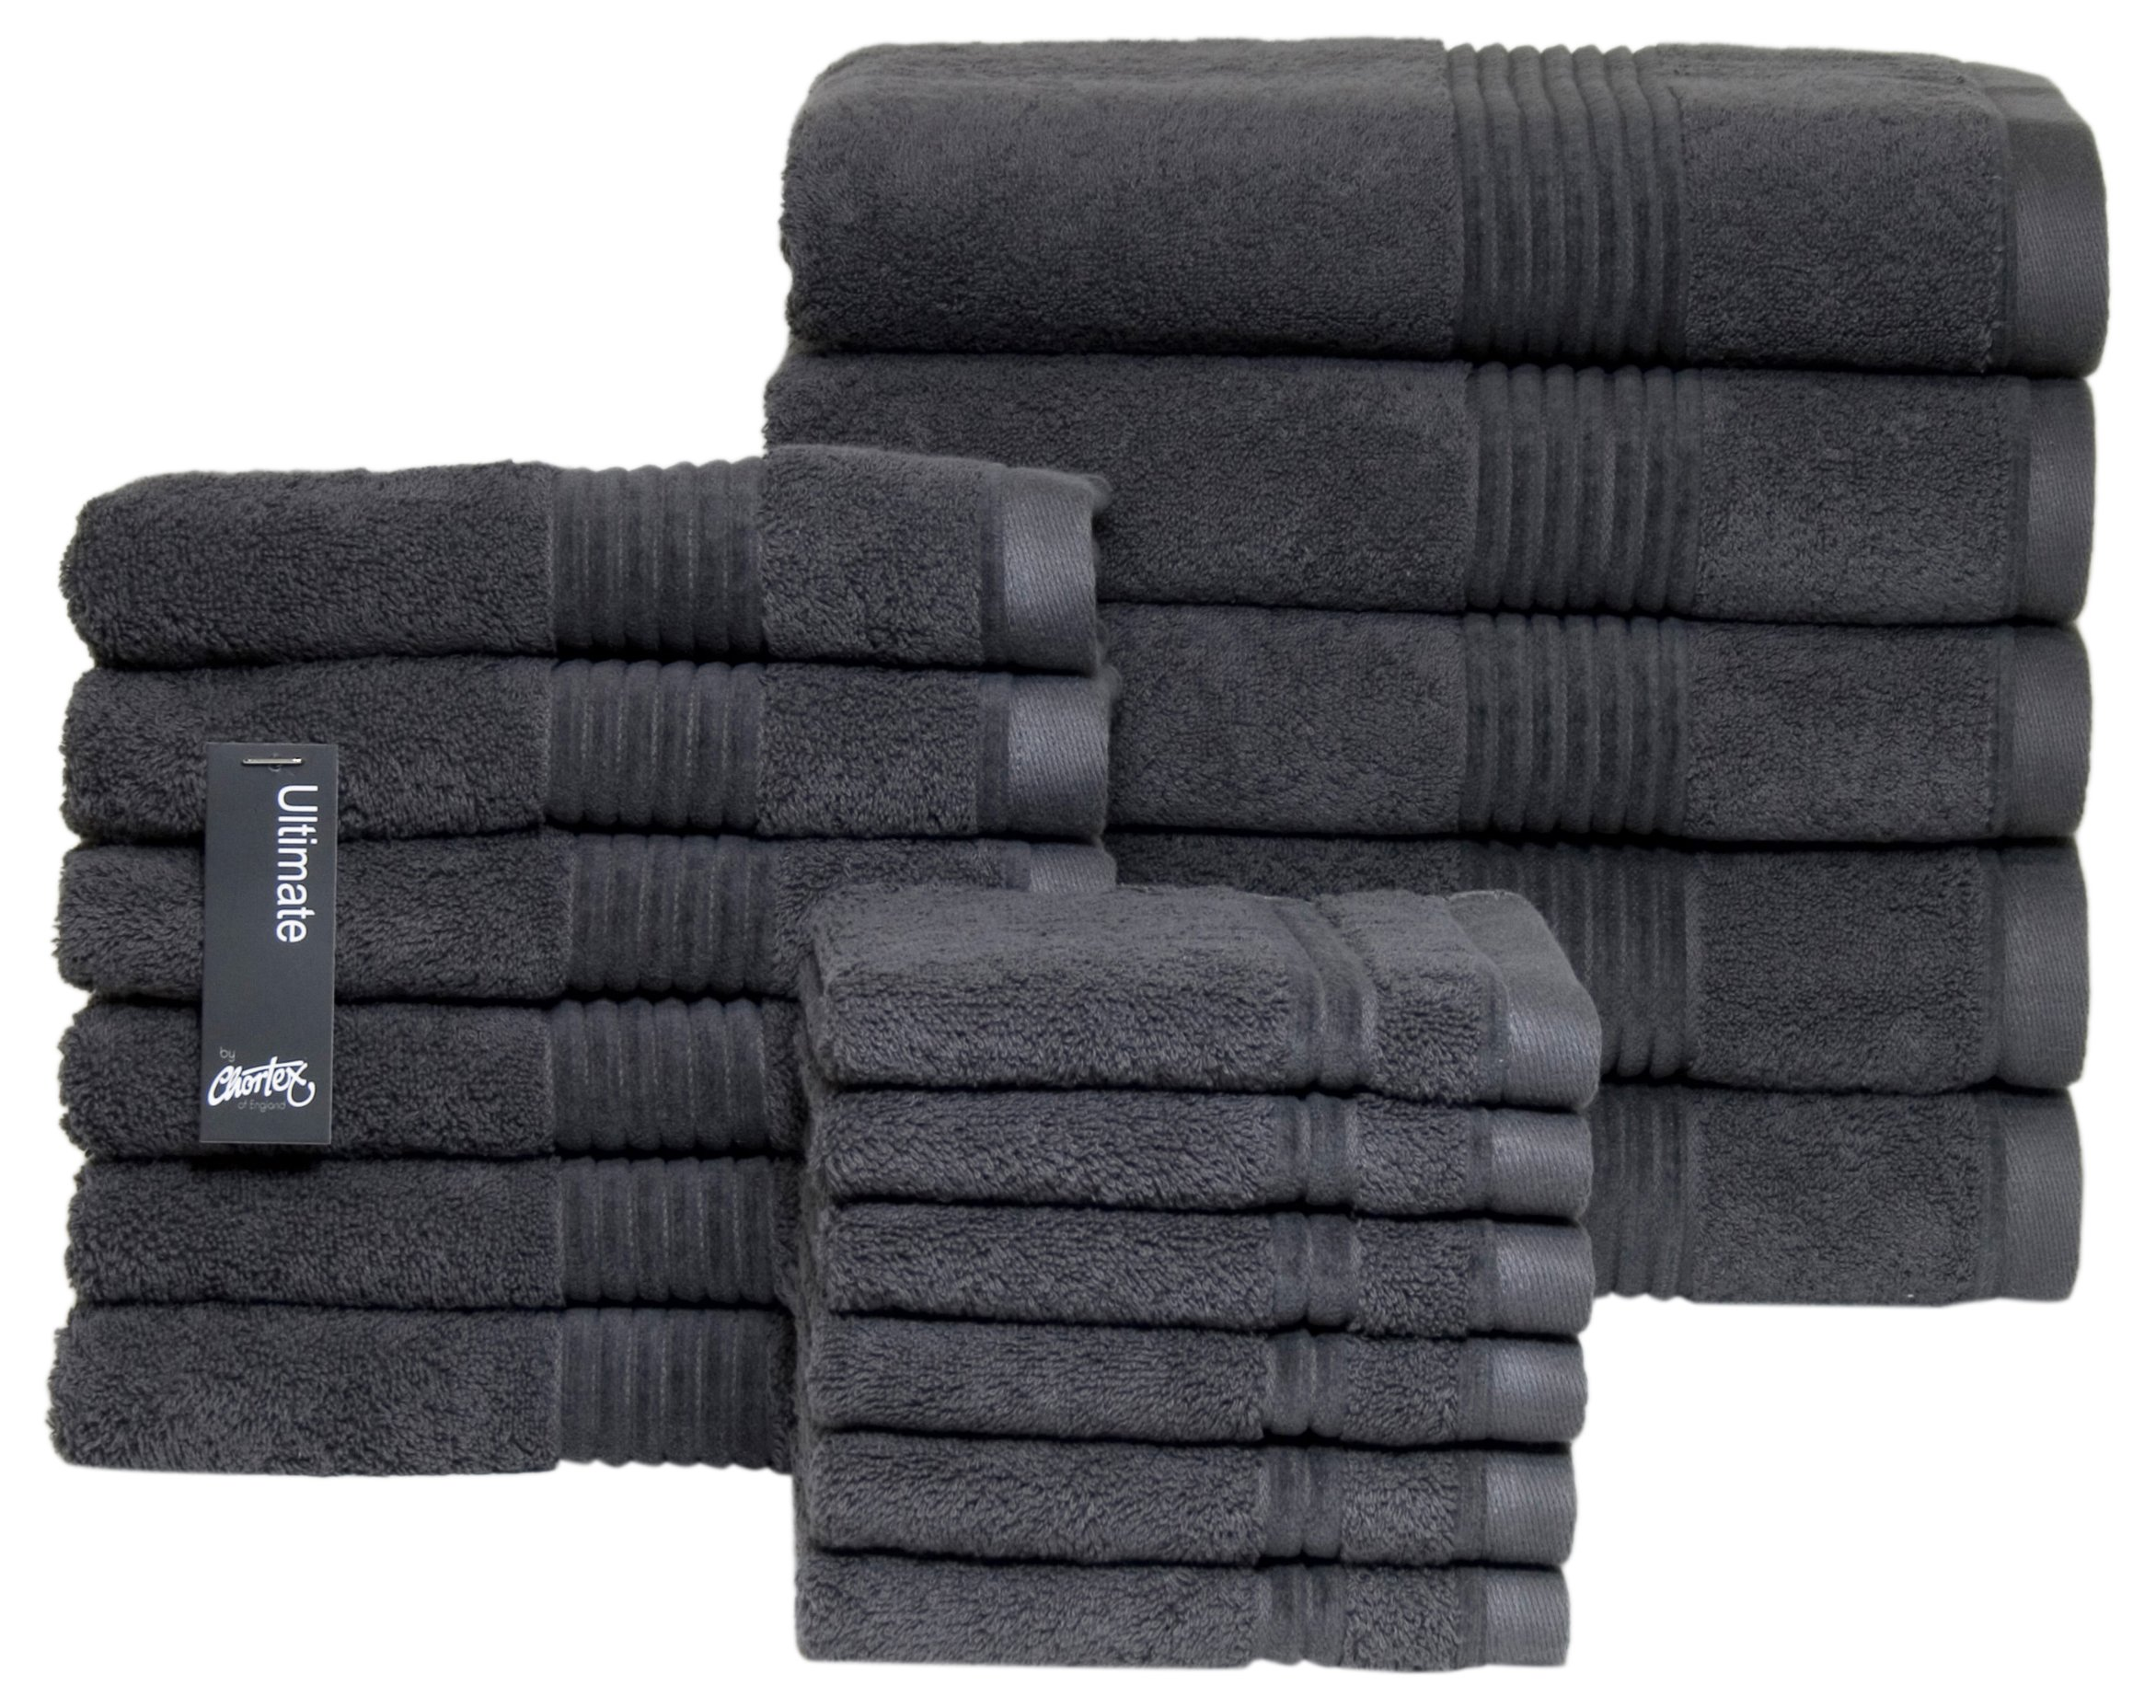 Chortex Zero Twist Cotton 17 Piece Towel Set, Set of 17, Charcoal